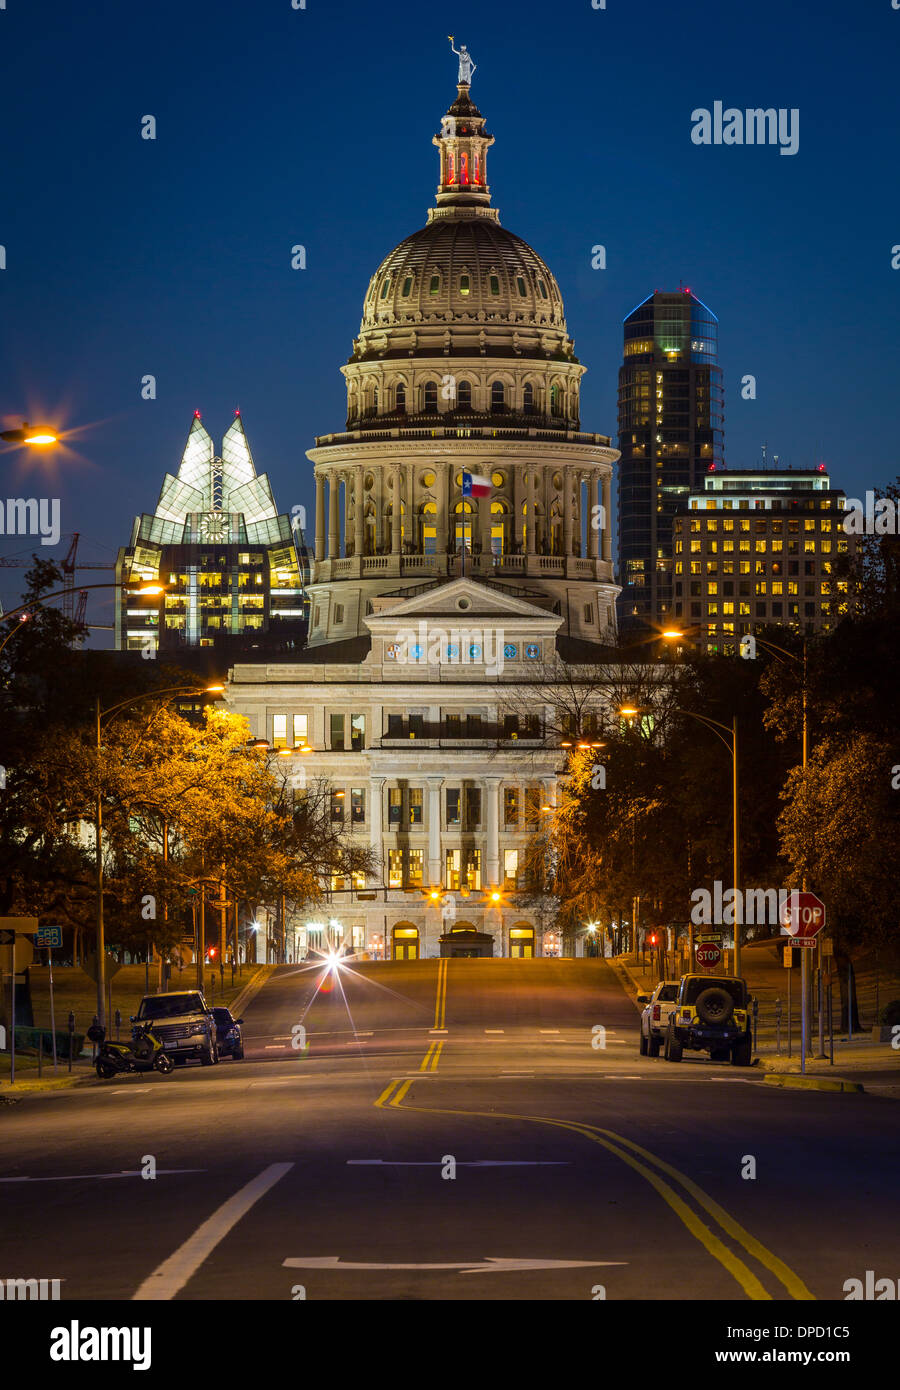 The Texas State Capitol, located in downtown Austin, Texas Stock Photo